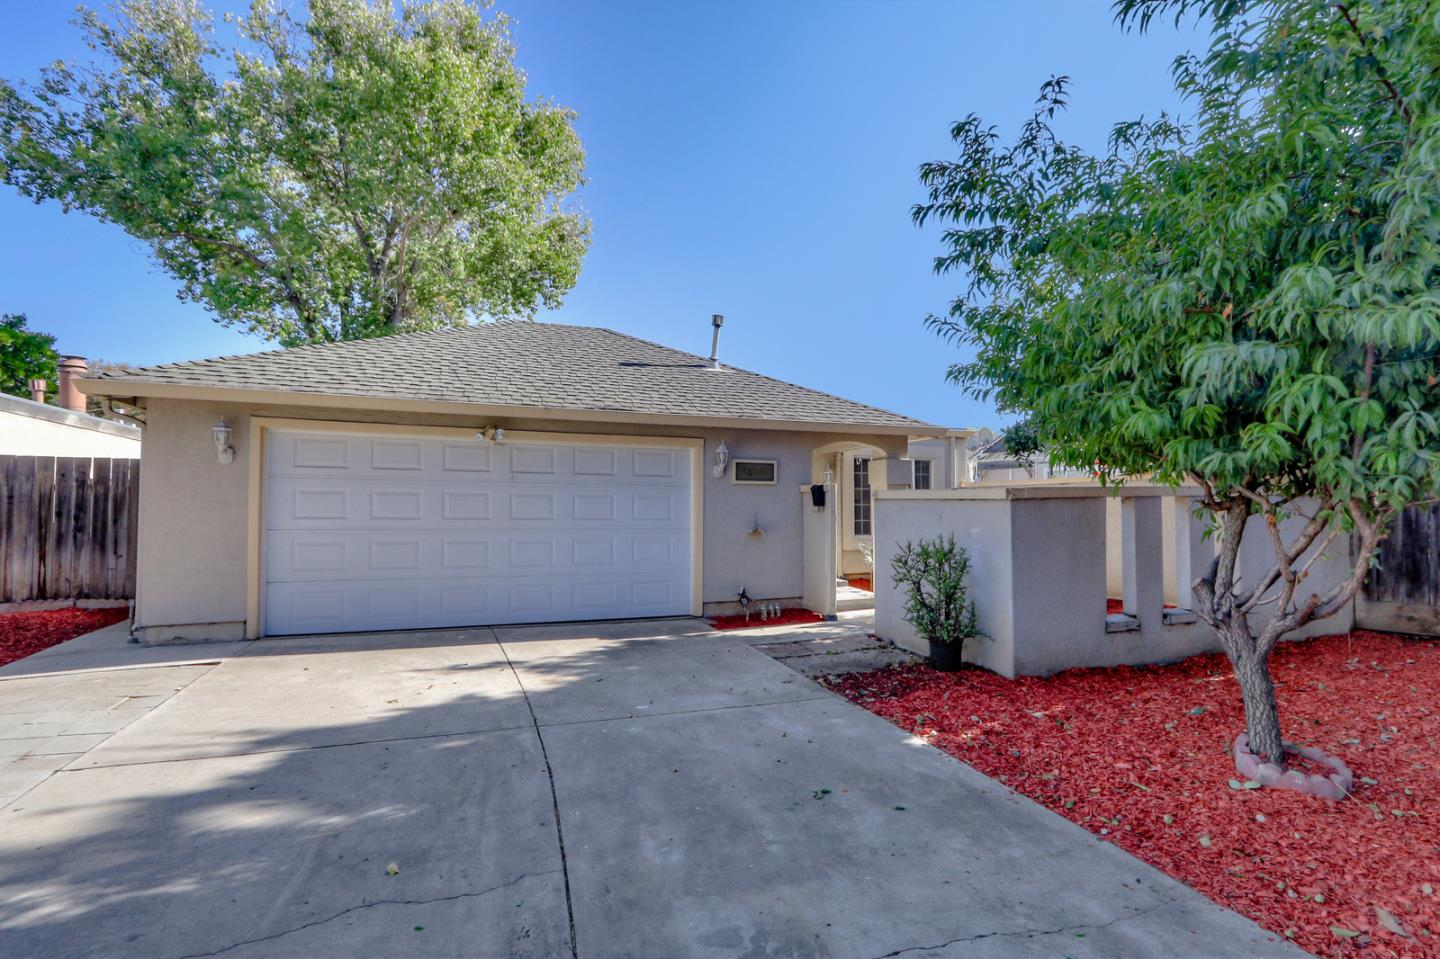 3899 Marfrance DR, Evergreen in Santa Clara County, CA 95121 Home for Sale